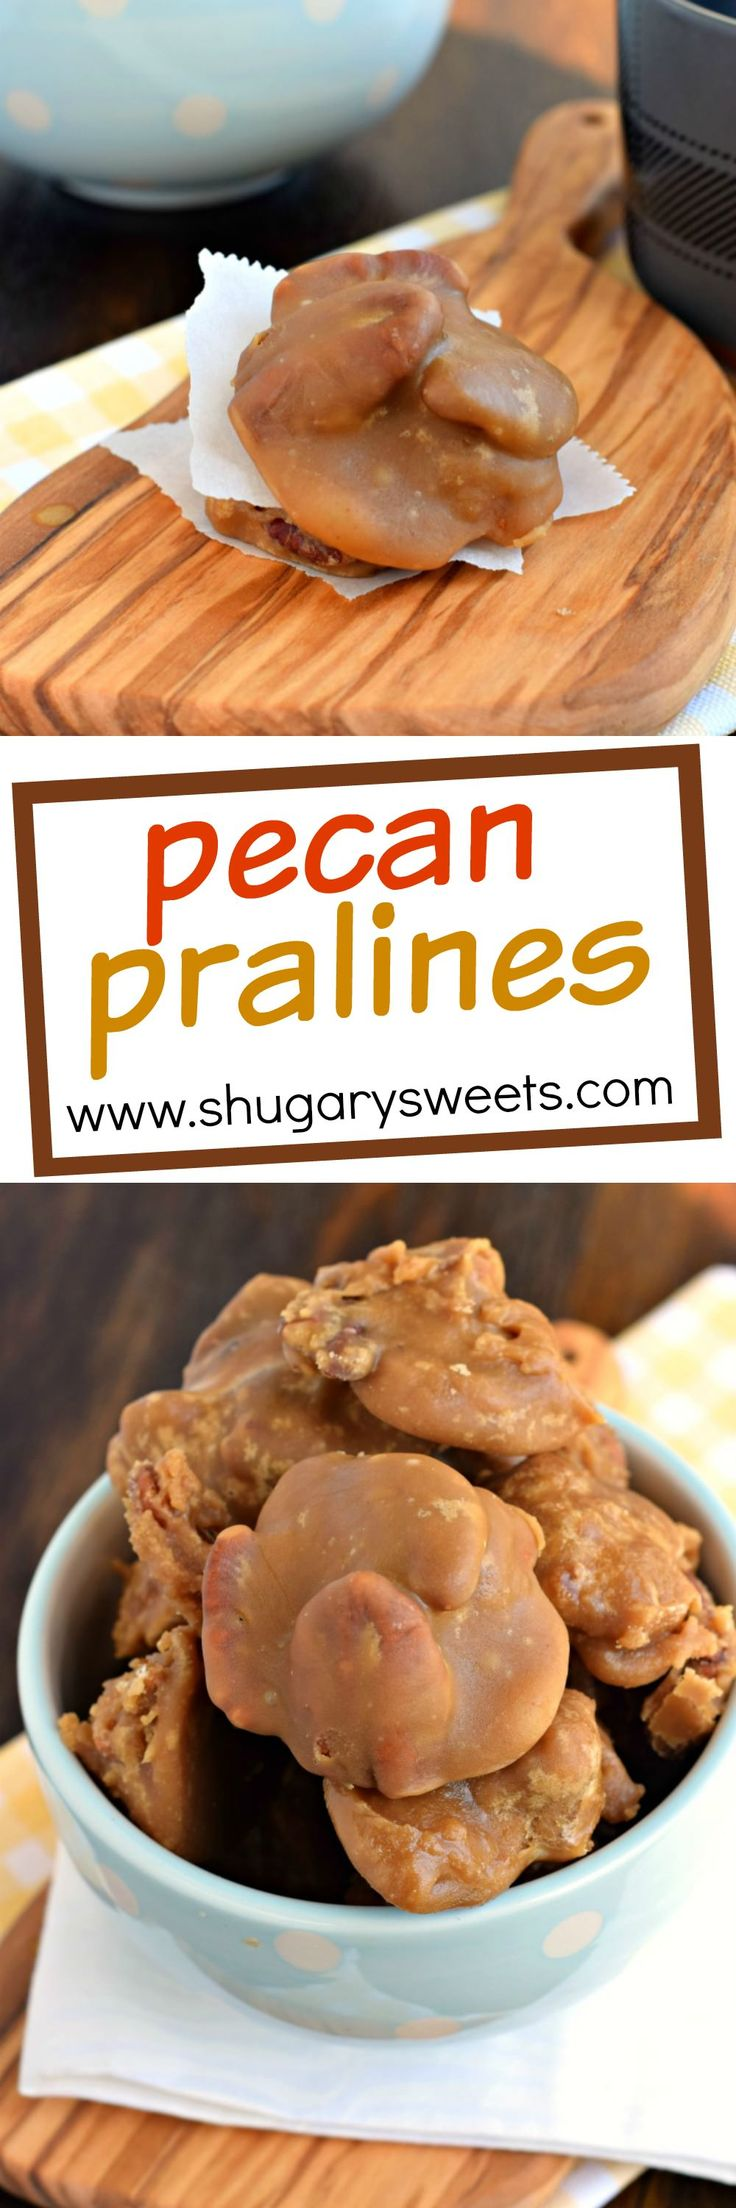 This buttery, brown sugar Southern candy is such a treat. Pecan Pralines are a classic that you have to try!